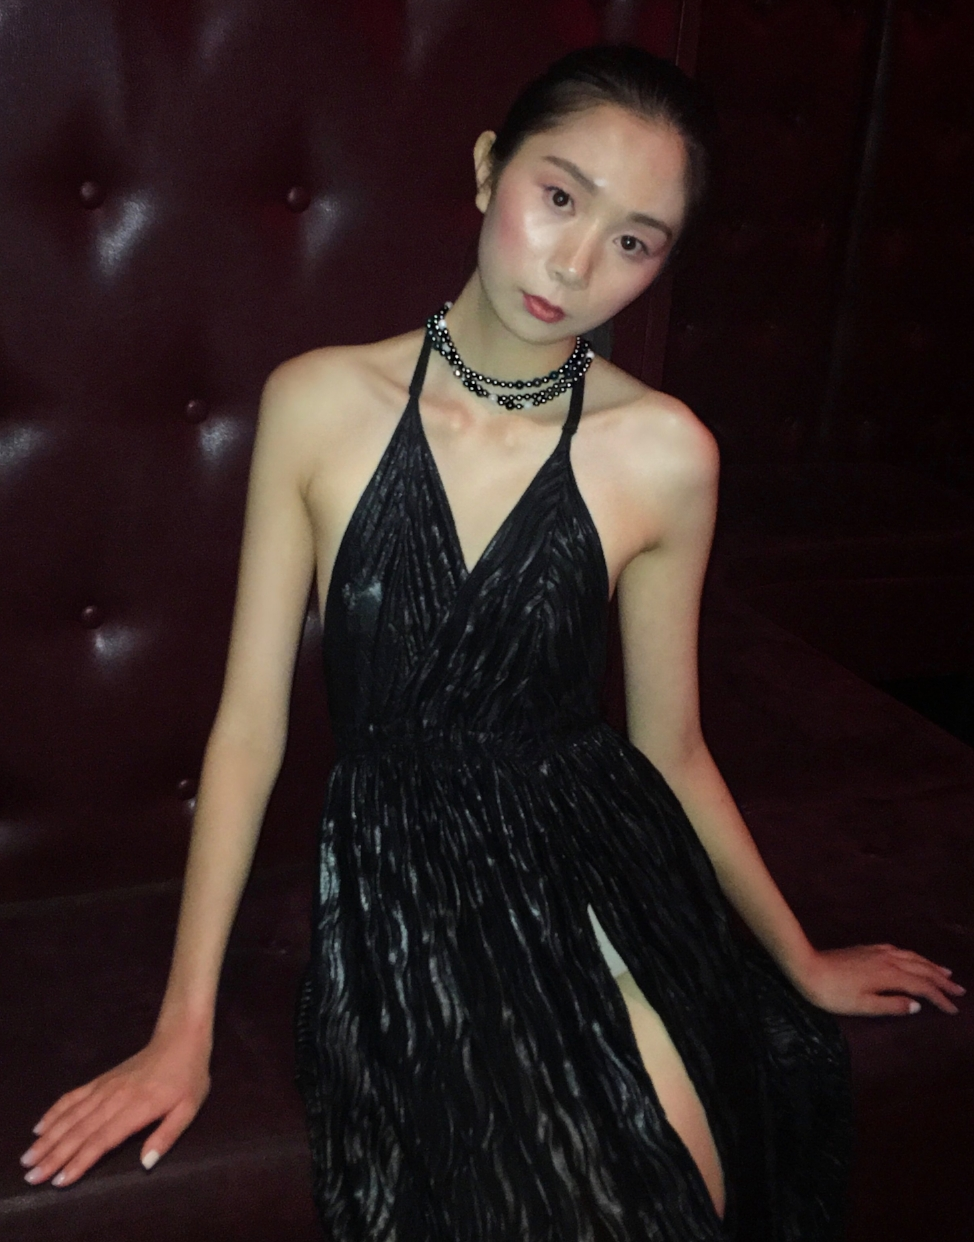 olga parkers jewelry nyfw prive hype app fashion events jewelry collection couture fine jewelry marble white grey bead bracelet gothic ash matte bead tassel necklace